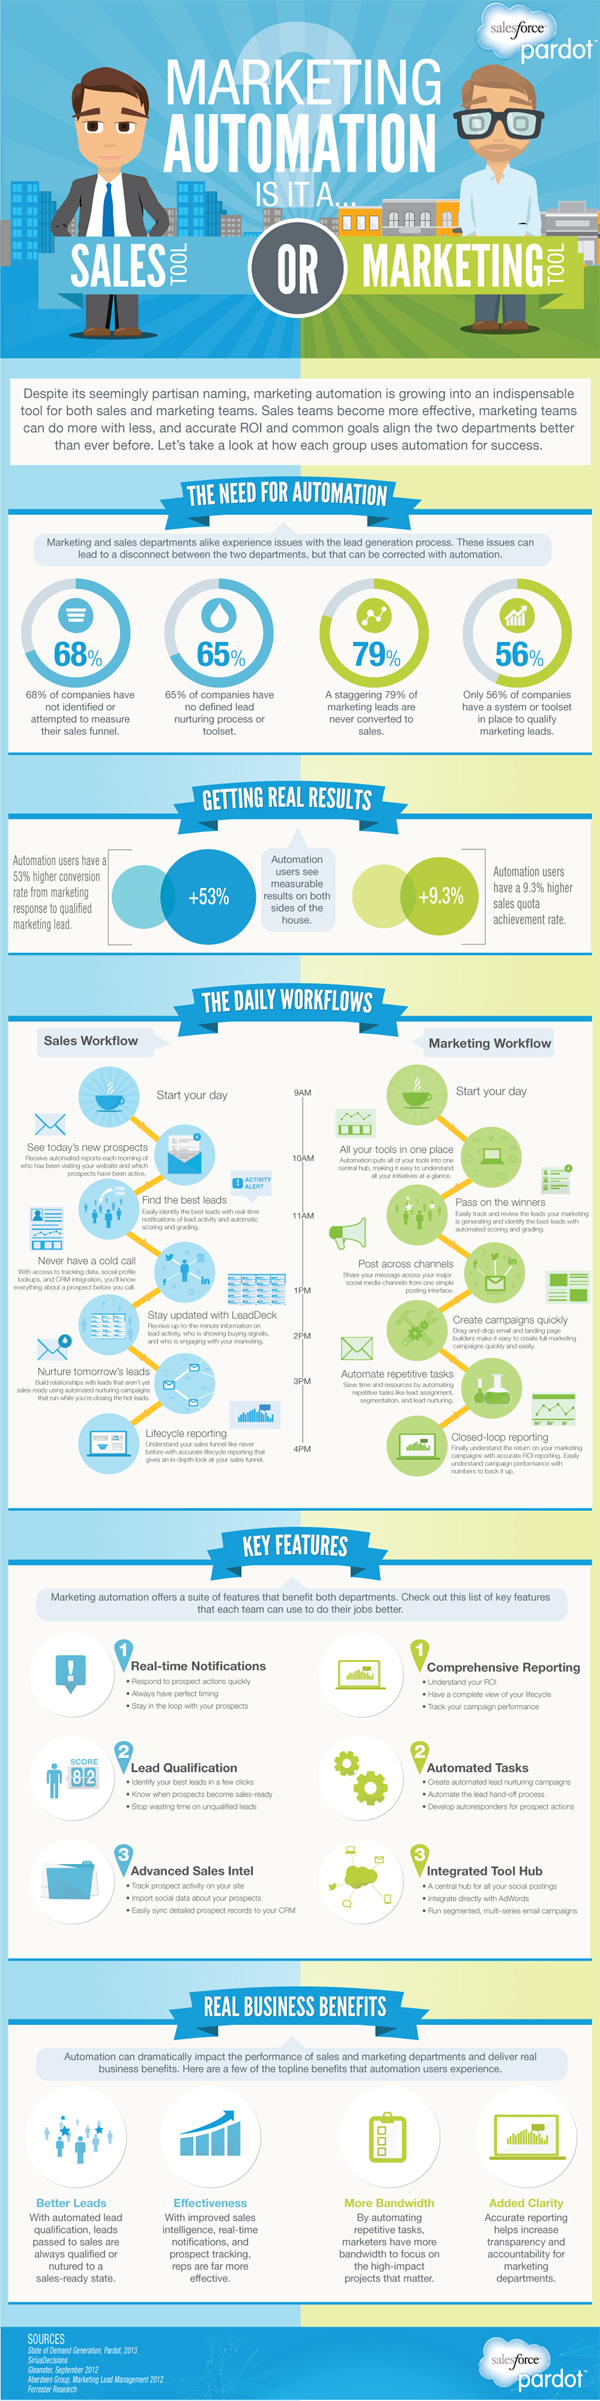 How Marketing Automation Works-Infographic